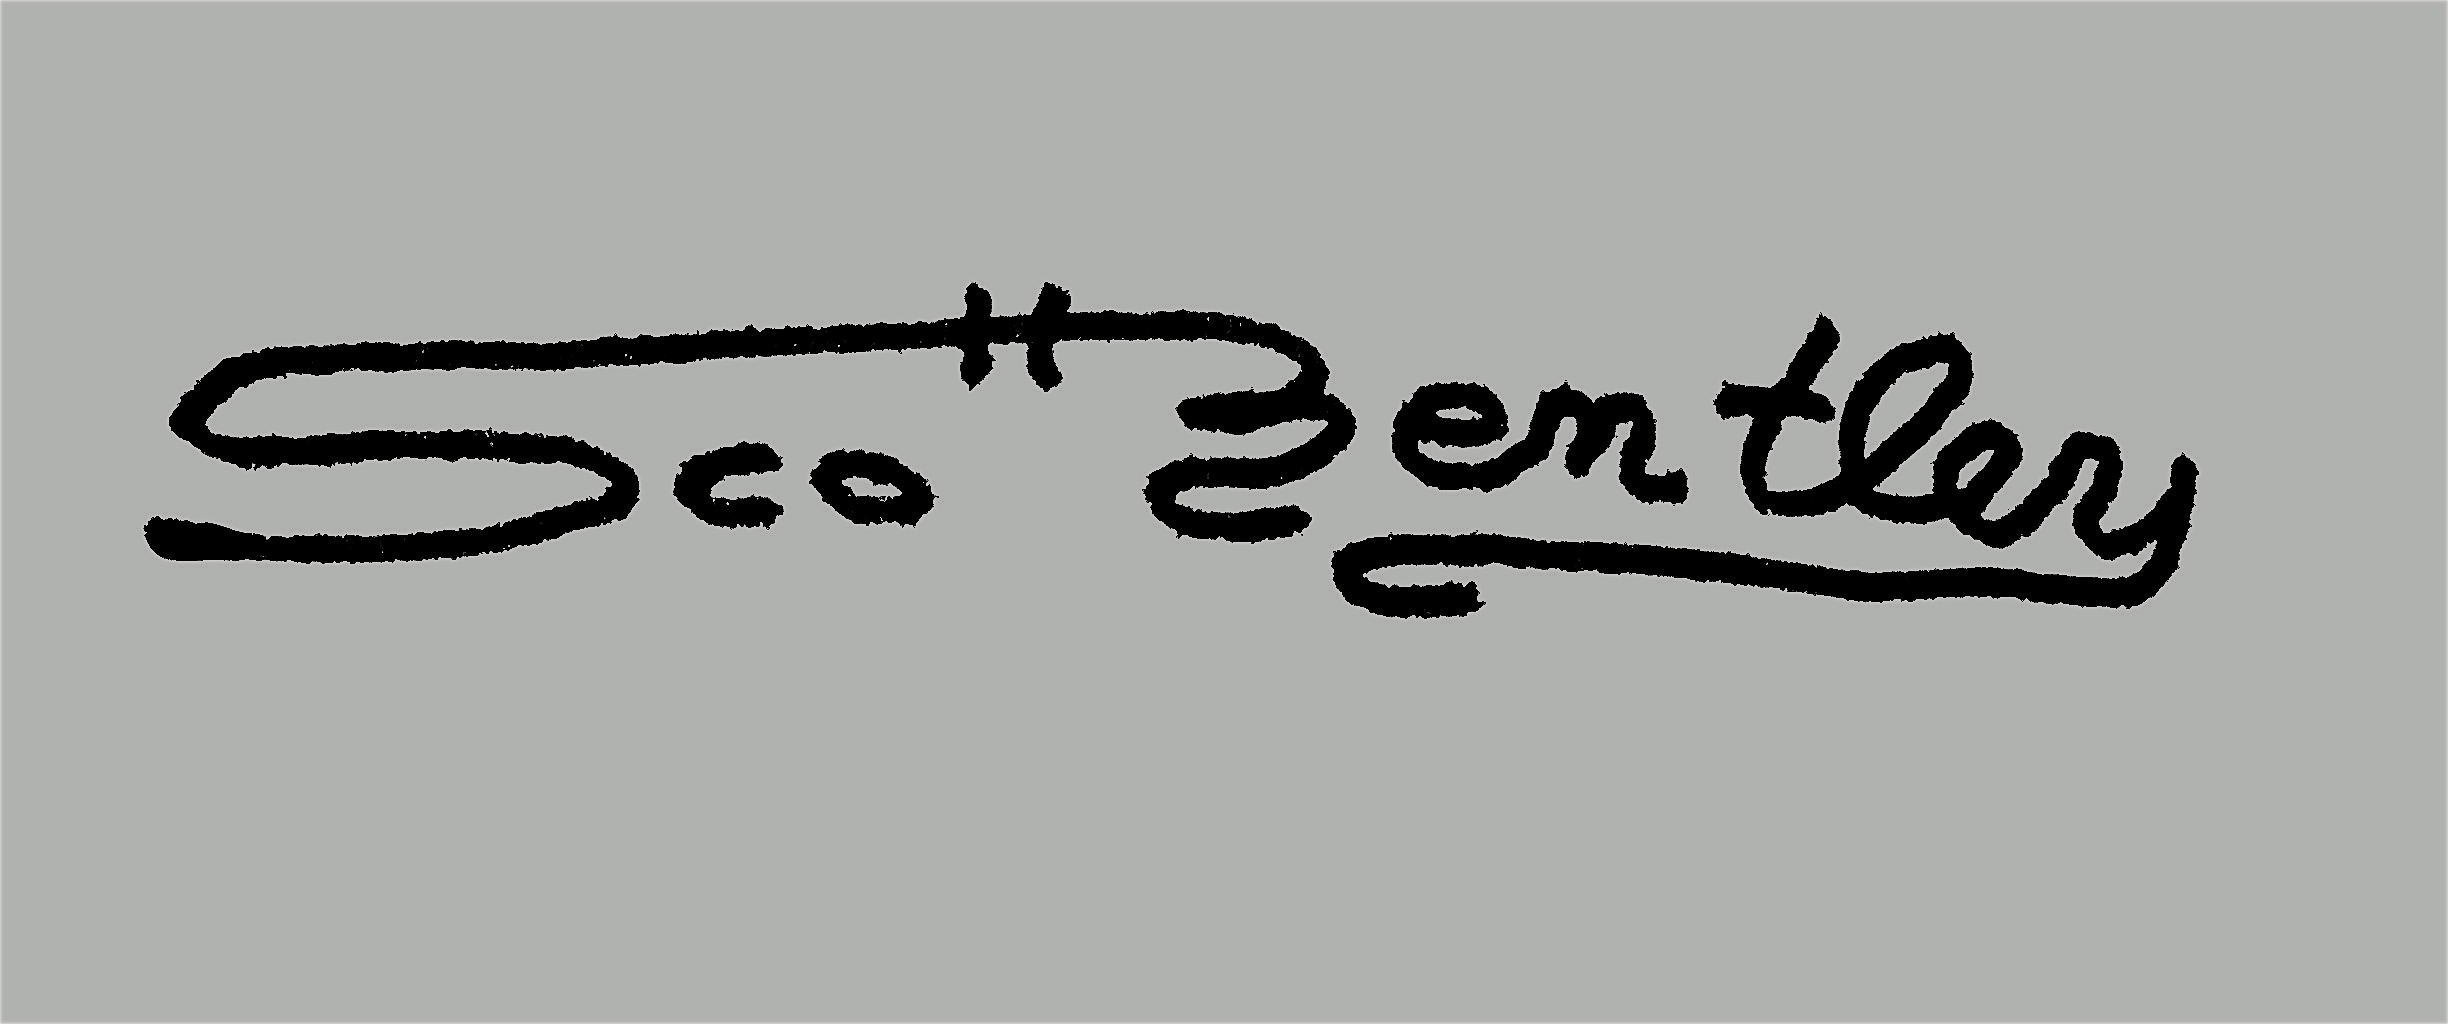 Scott Bentley's Signature